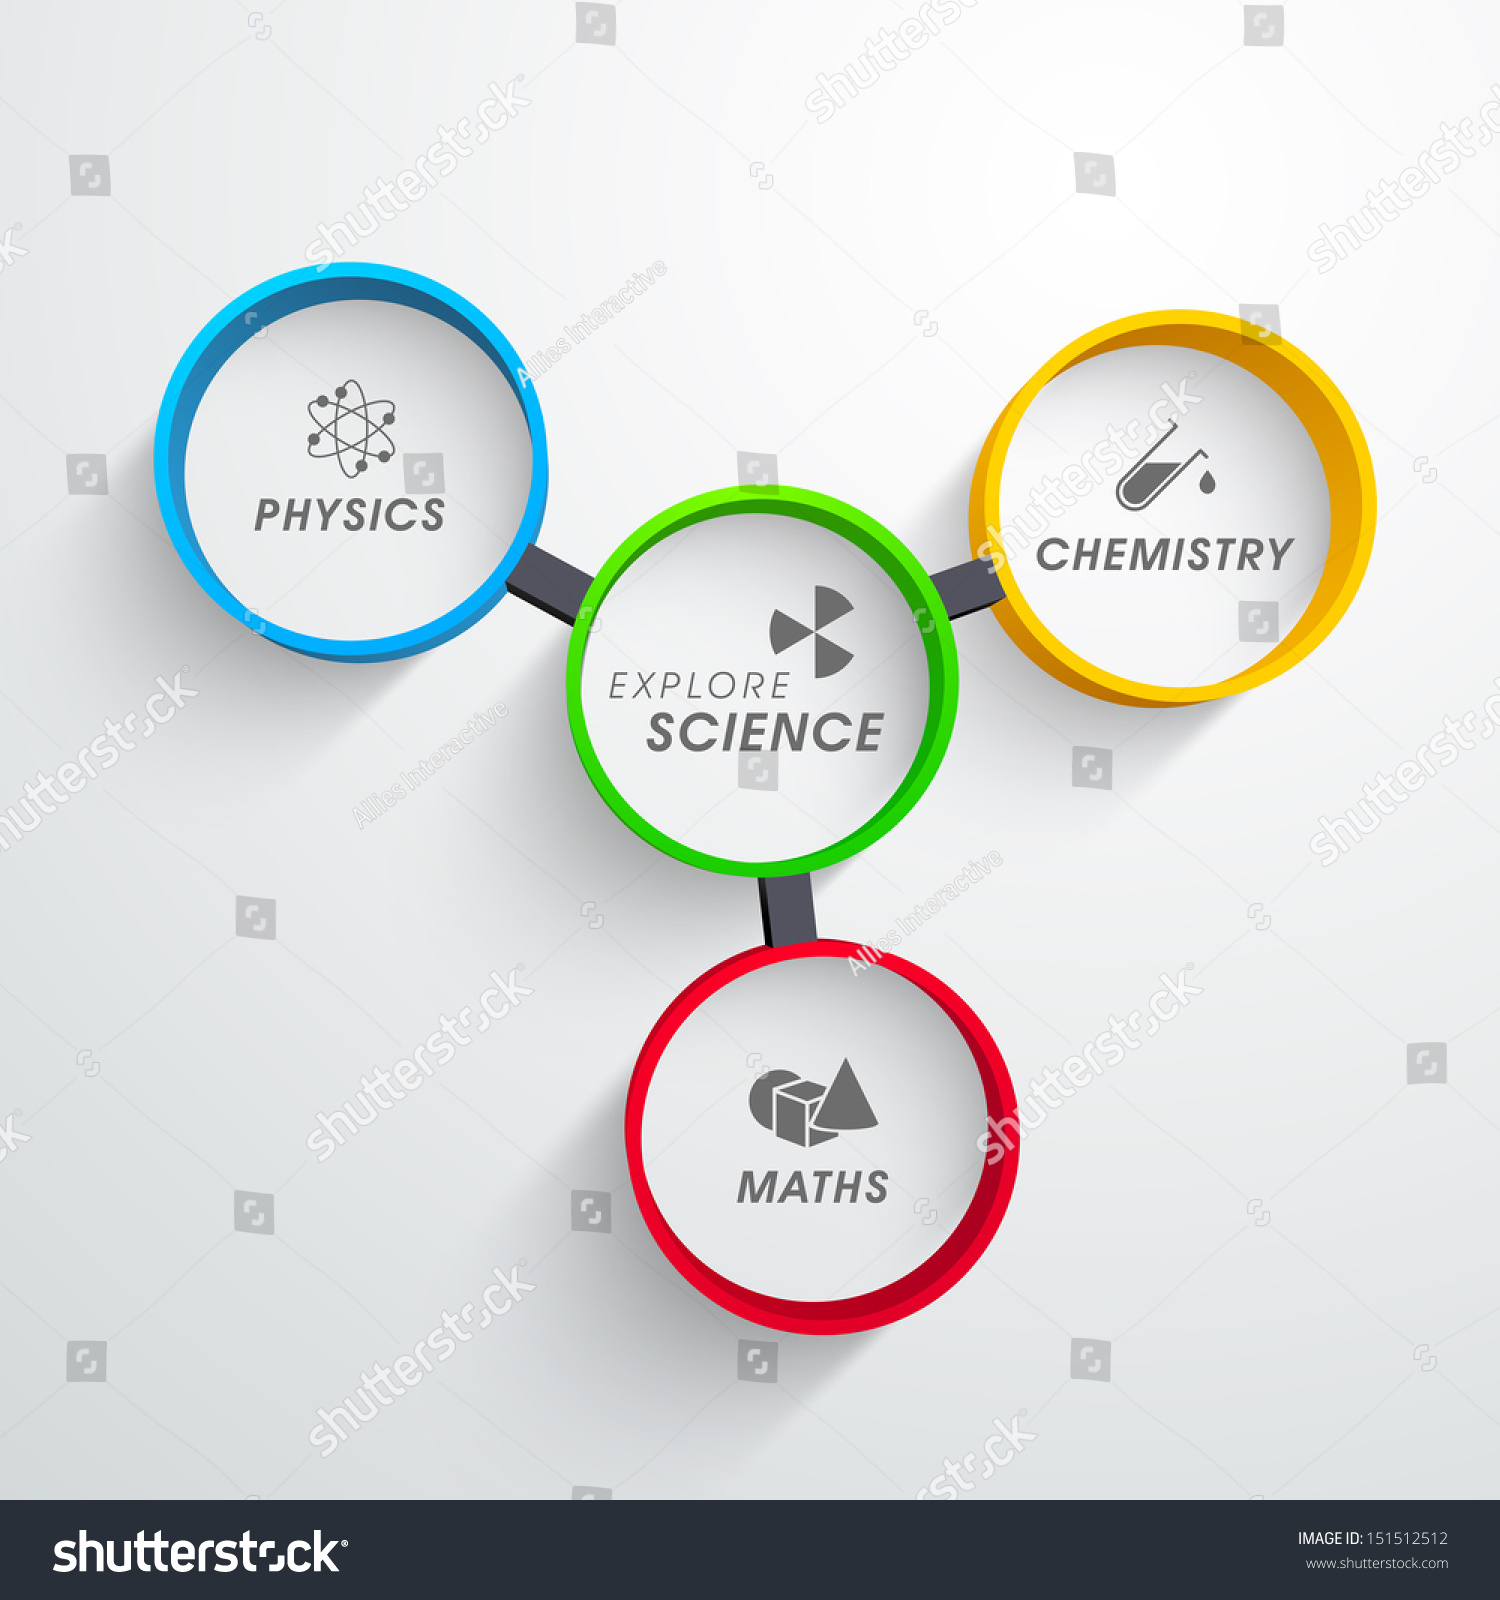 Science Physics From: Science Concept With Association Of Physics, Chemistry And